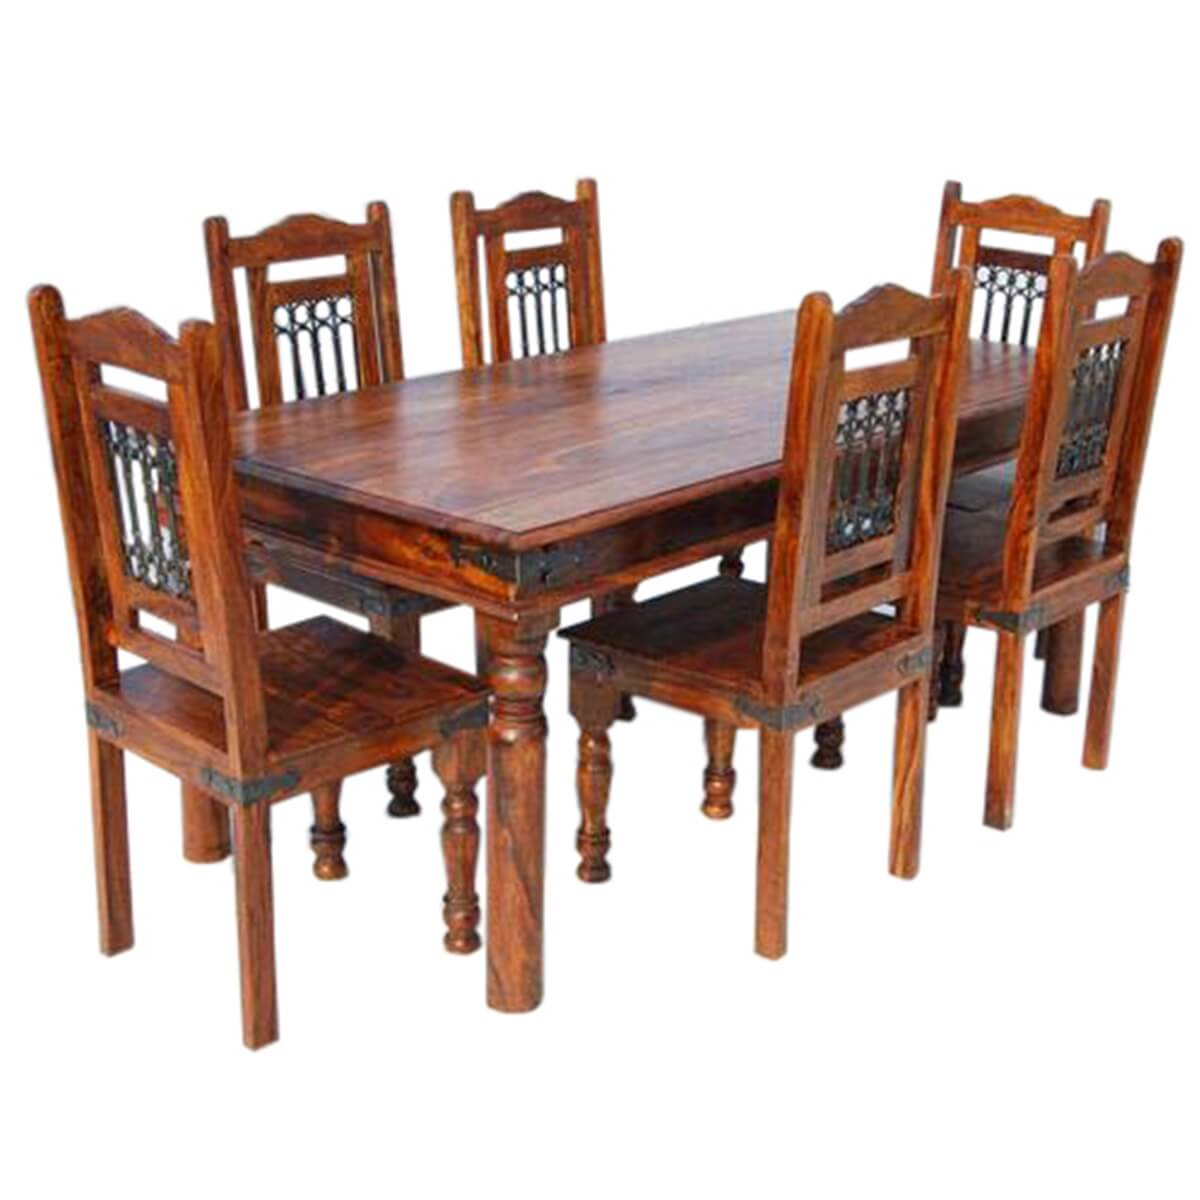 philadelphia dining room table and chair set w wrought iron grill work. Black Bedroom Furniture Sets. Home Design Ideas